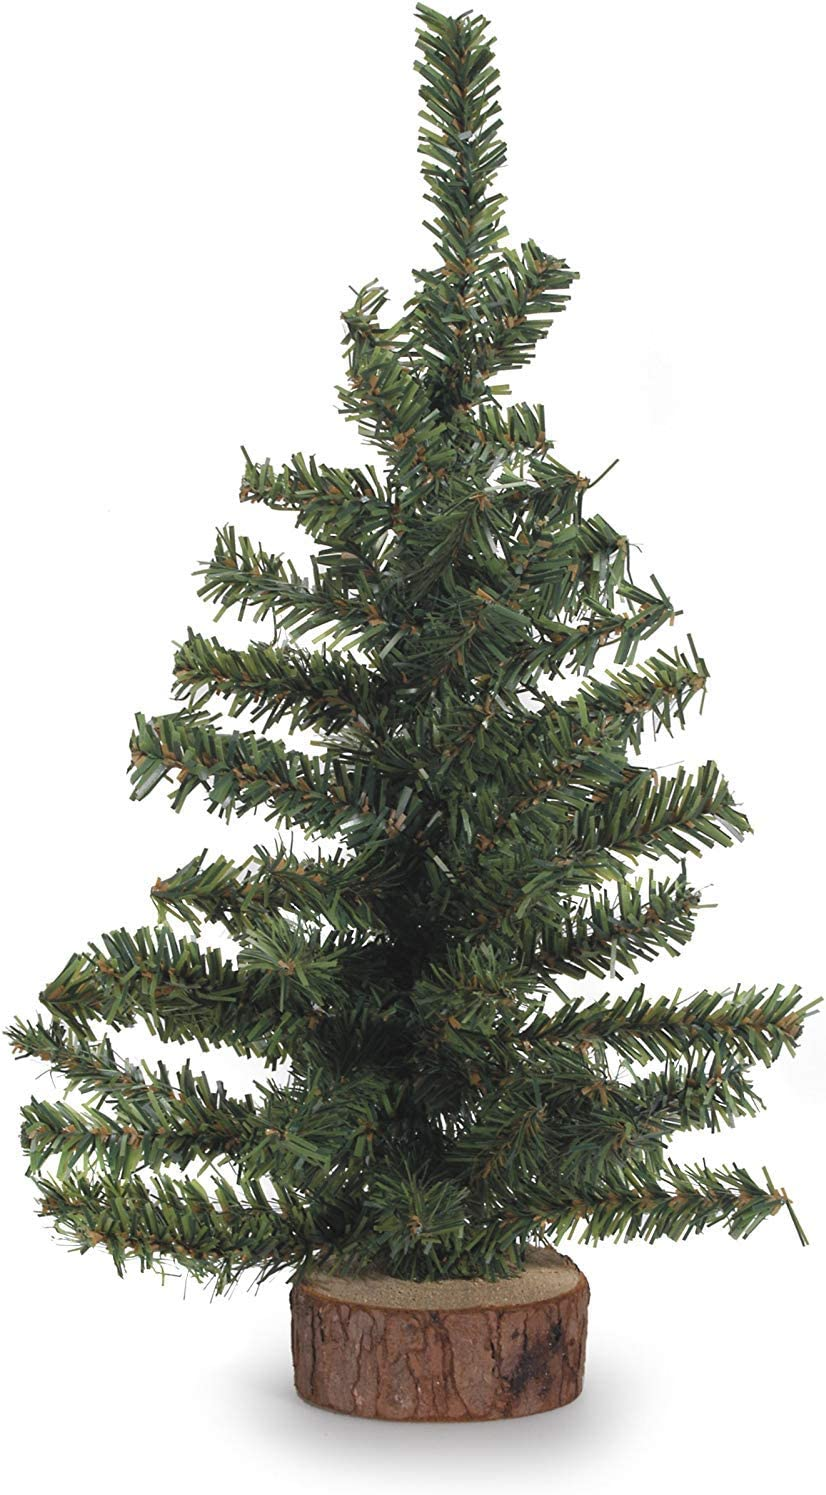 Darice Canadian Pine Tree Ranking TOP15 Daily bargain sale with Wood 60 Tips inches 12 Base: